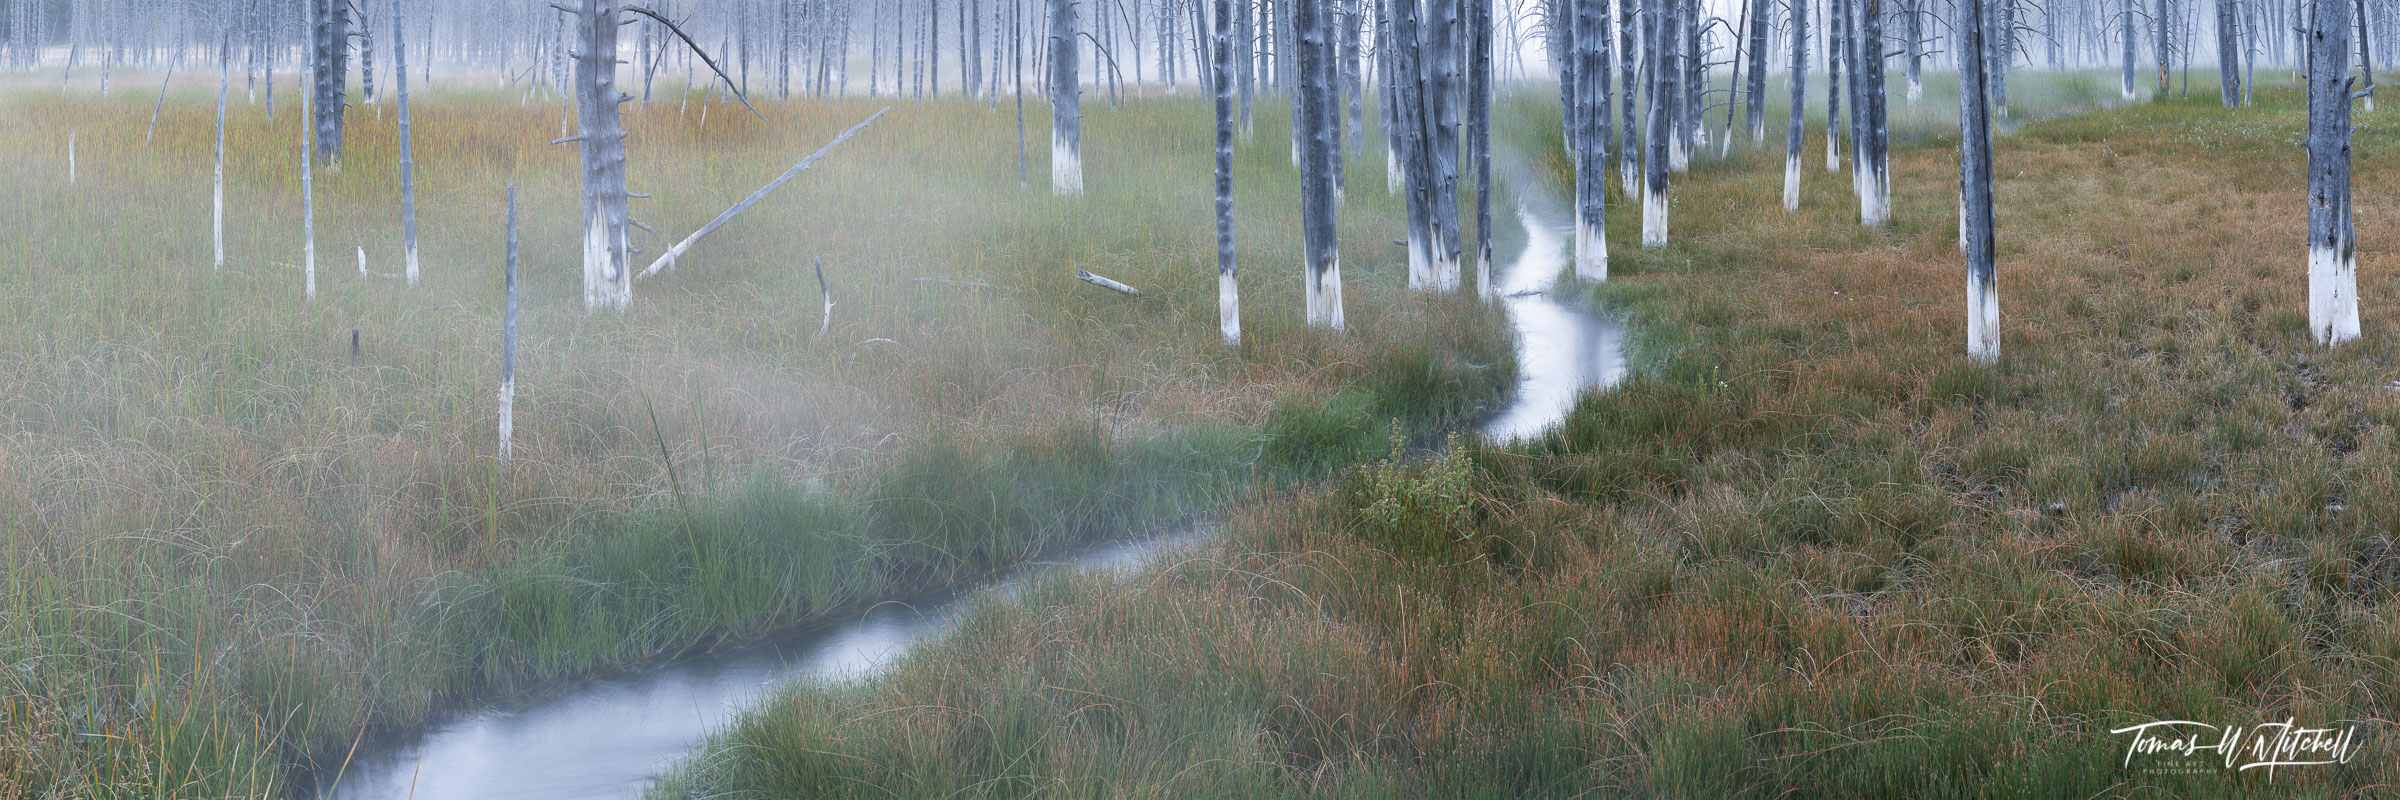 yellowstone national park, limited edition, fine art, prints, fall colors, tree trunks, water, grass, stream, forest, panoramic, artist's proof, , photo